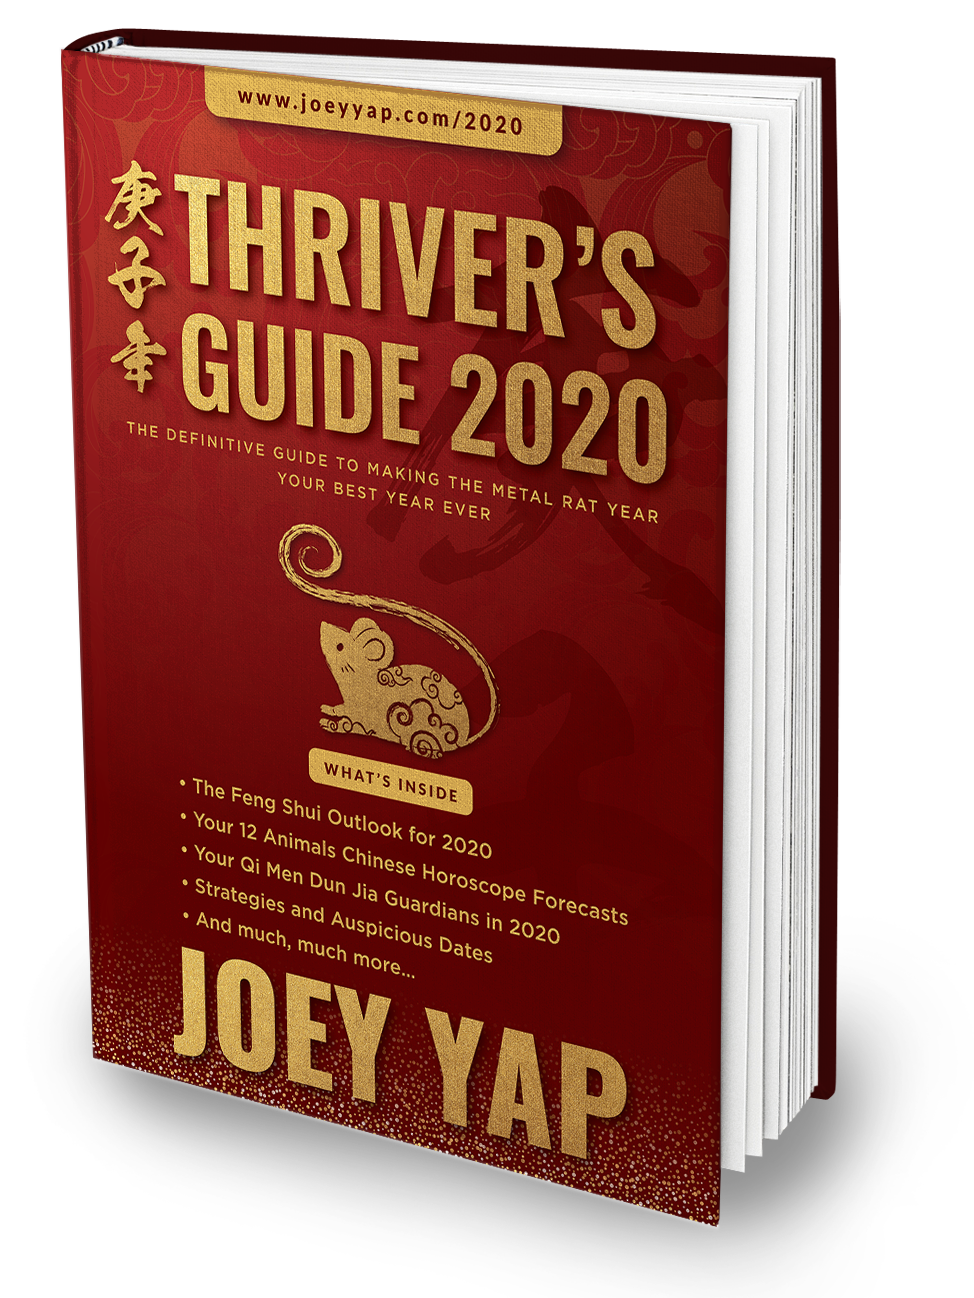 Best Self Help Books 2020.Make 2020 Your Best Year Ever